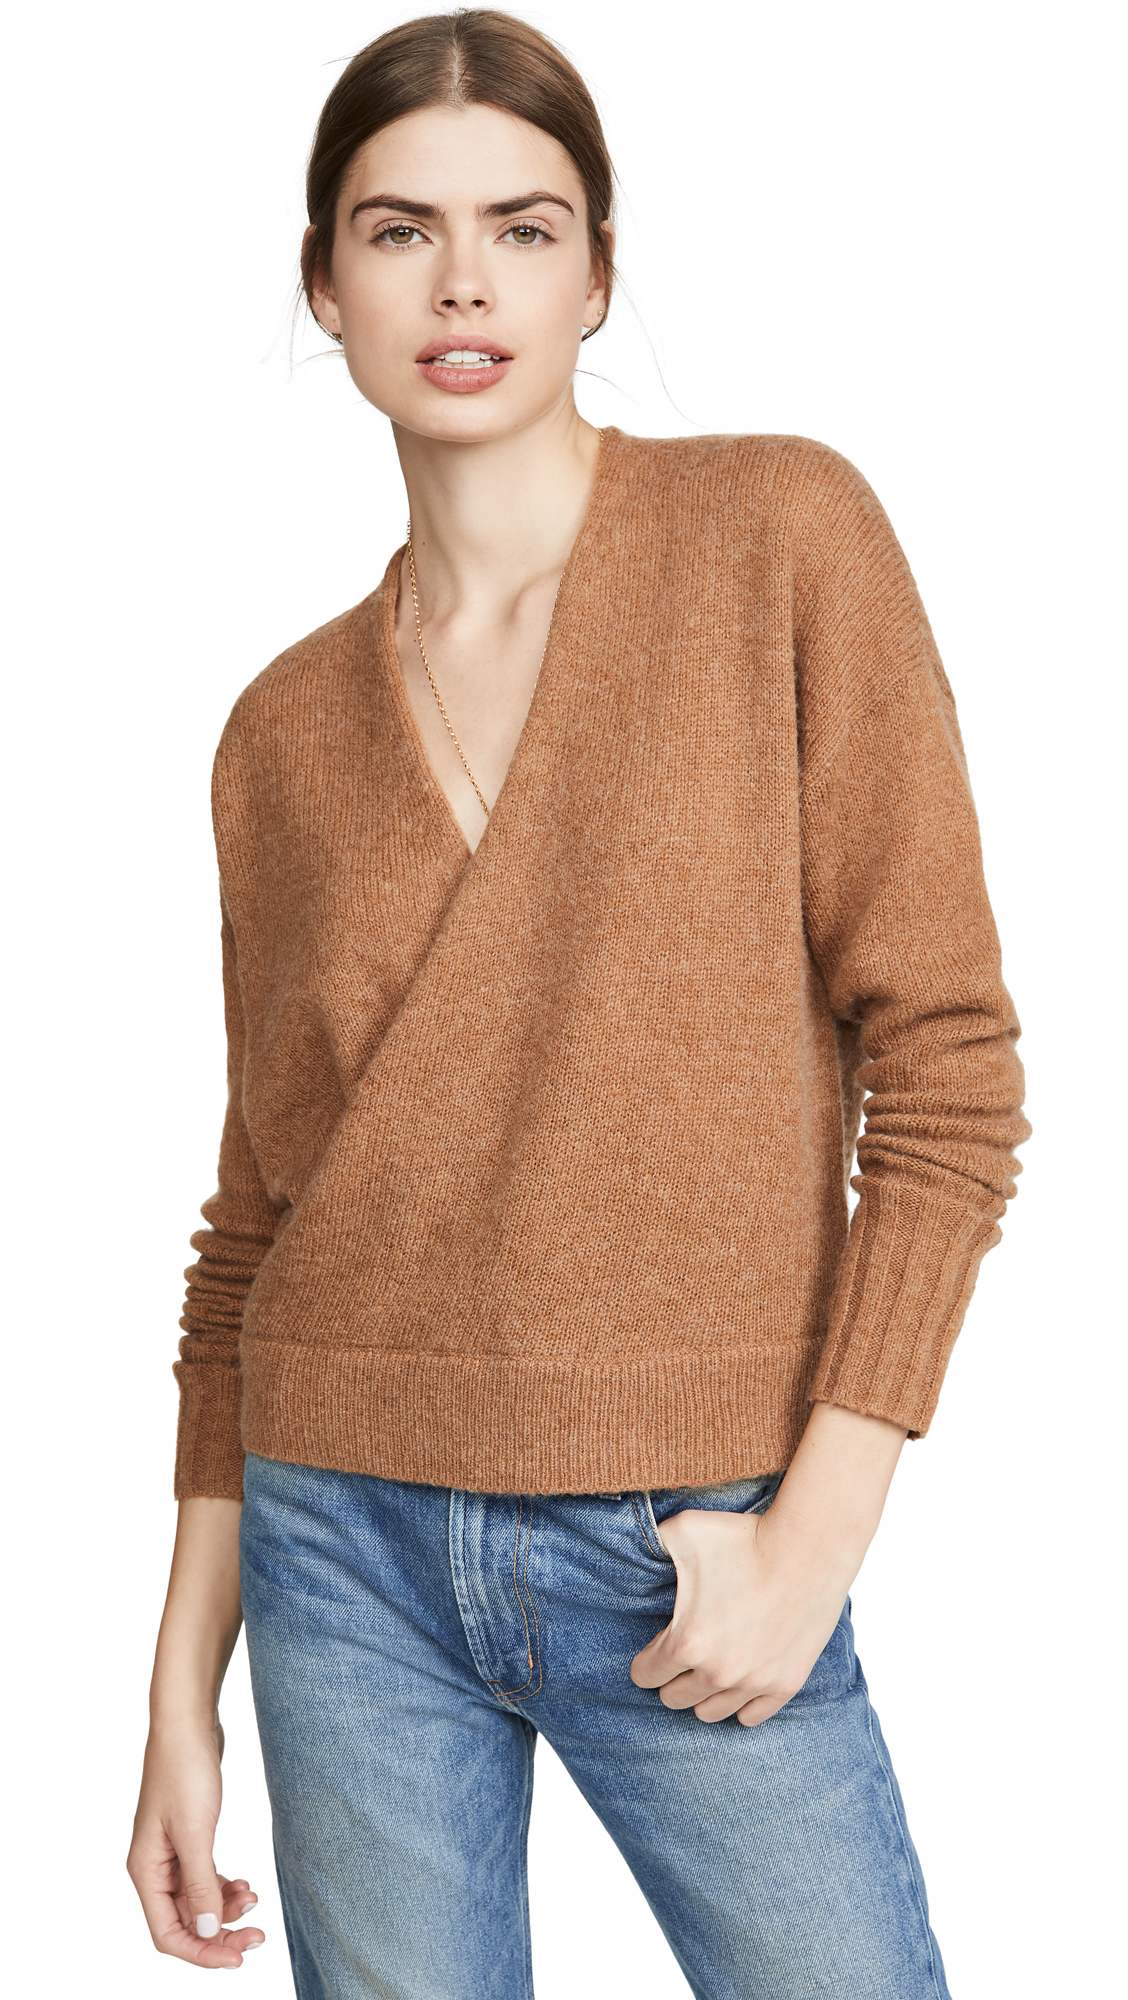 Buy 360 SWEATER online - photo of 360 SWEATER Karlie Sweater